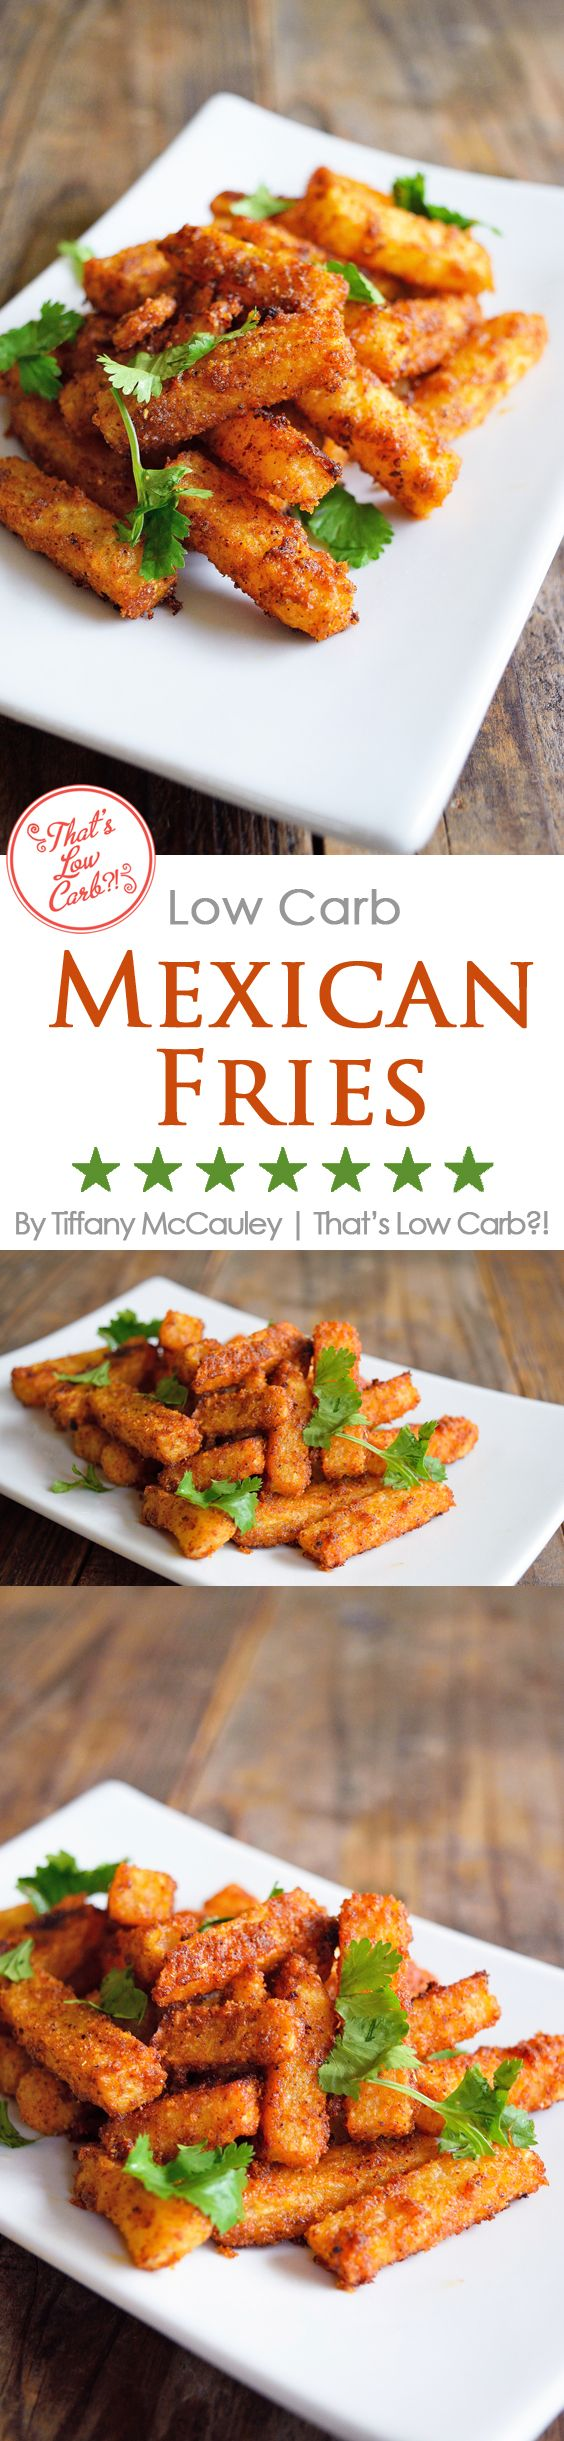 Low Carb Recipes | Mexican Fries | Jicama Fries | Low Carb Snacks